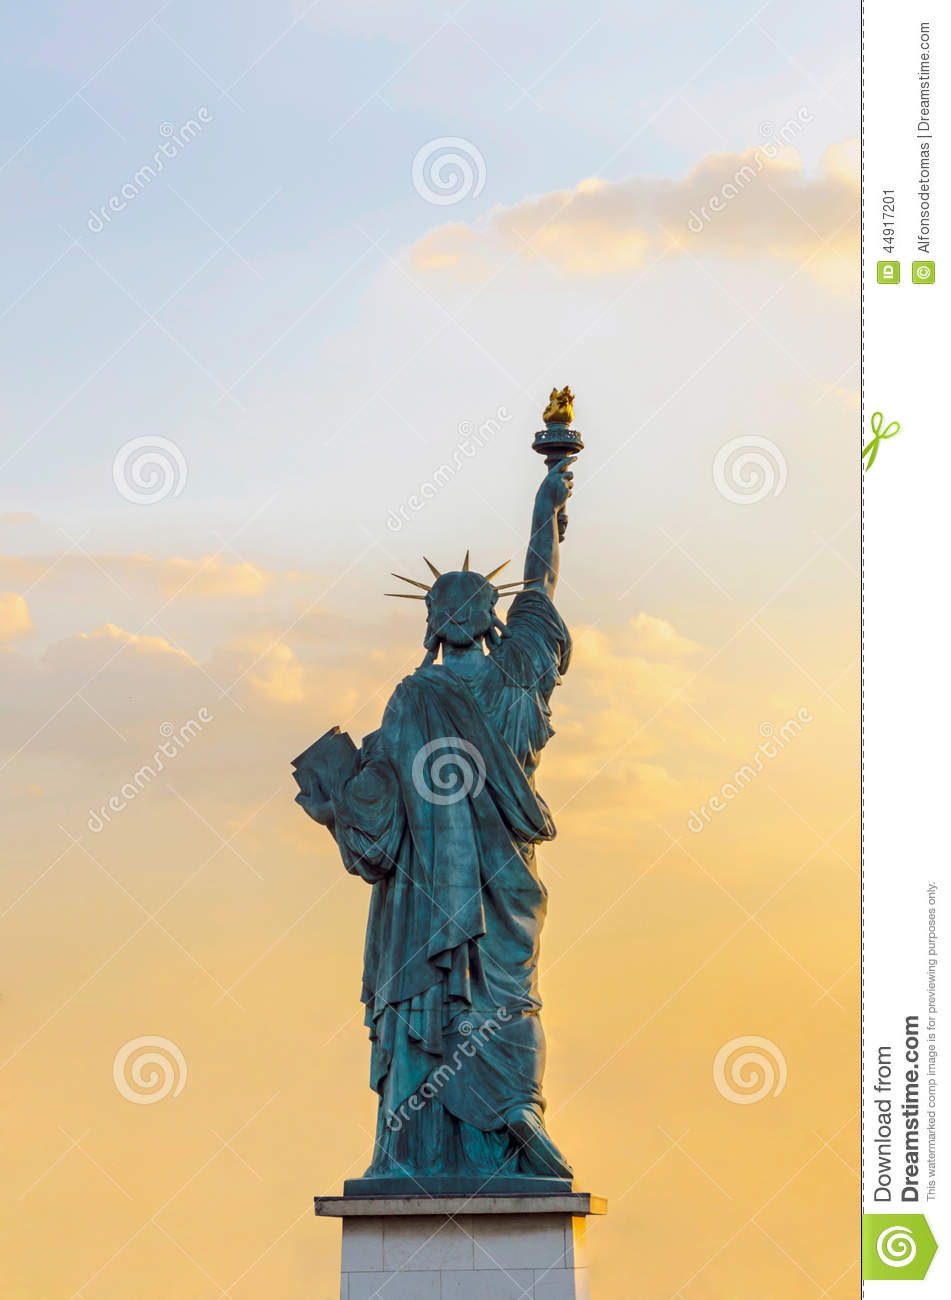 Liberty: Definition, Features, Types and Essential Safeguards of Liberty